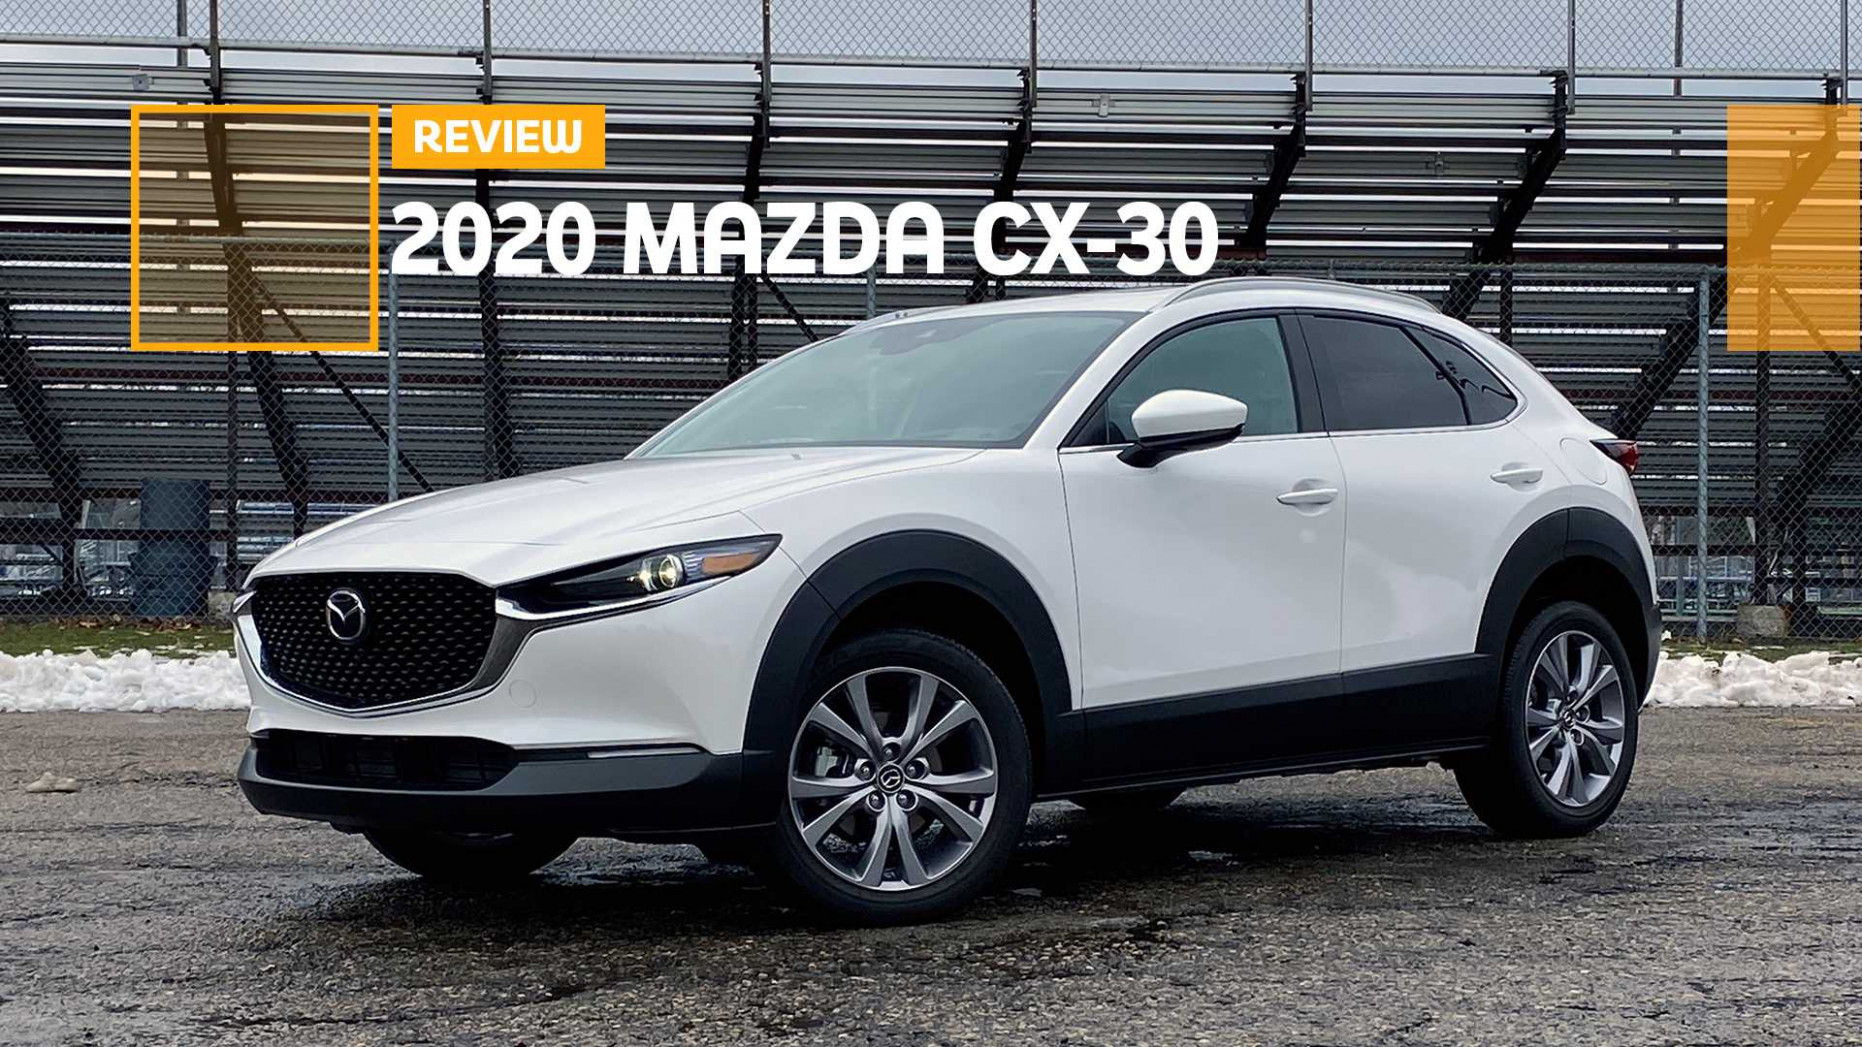 8 Mazda CX-8 Premium Review: Changing The Equation